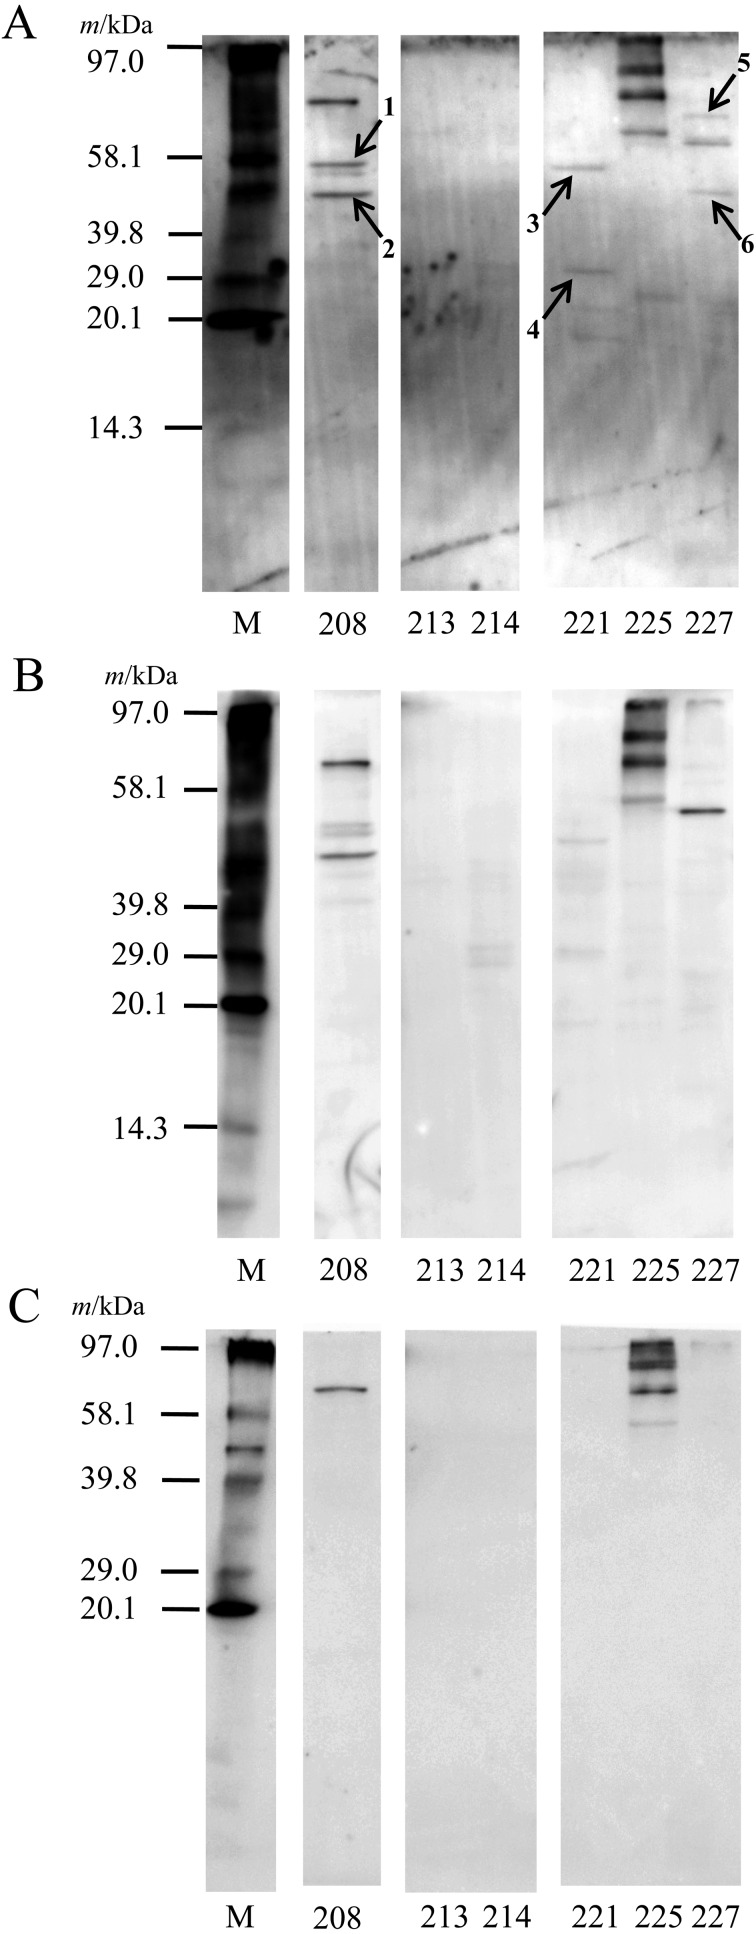 Detection of adhesins in PBS extracts by a receptor overlay (RO) analysis. After SDS-PAGE using 1 mg/ml PBS extracts, proteins were electrophoretically transferred to a PVDF membrane. The membrane was blocked with 5% skim milk. After washing, the membrane was soaked in TBS-T containing the biotinylated PIM (A), BSA (control protein) (B), or only TBS-T buffer (negative control) (C) overnight. After washing, protein bands were visualized using ExtrAvidin Alkaline Phosphatase Conjugate and ECF substrate with a luminescent image analyzer (excitation, 440 nm; emission, 560 nm). M: biotinylated molecular weight marker. The numbers (shows arrows) indicate proteins that were identified ( Table 2 ).